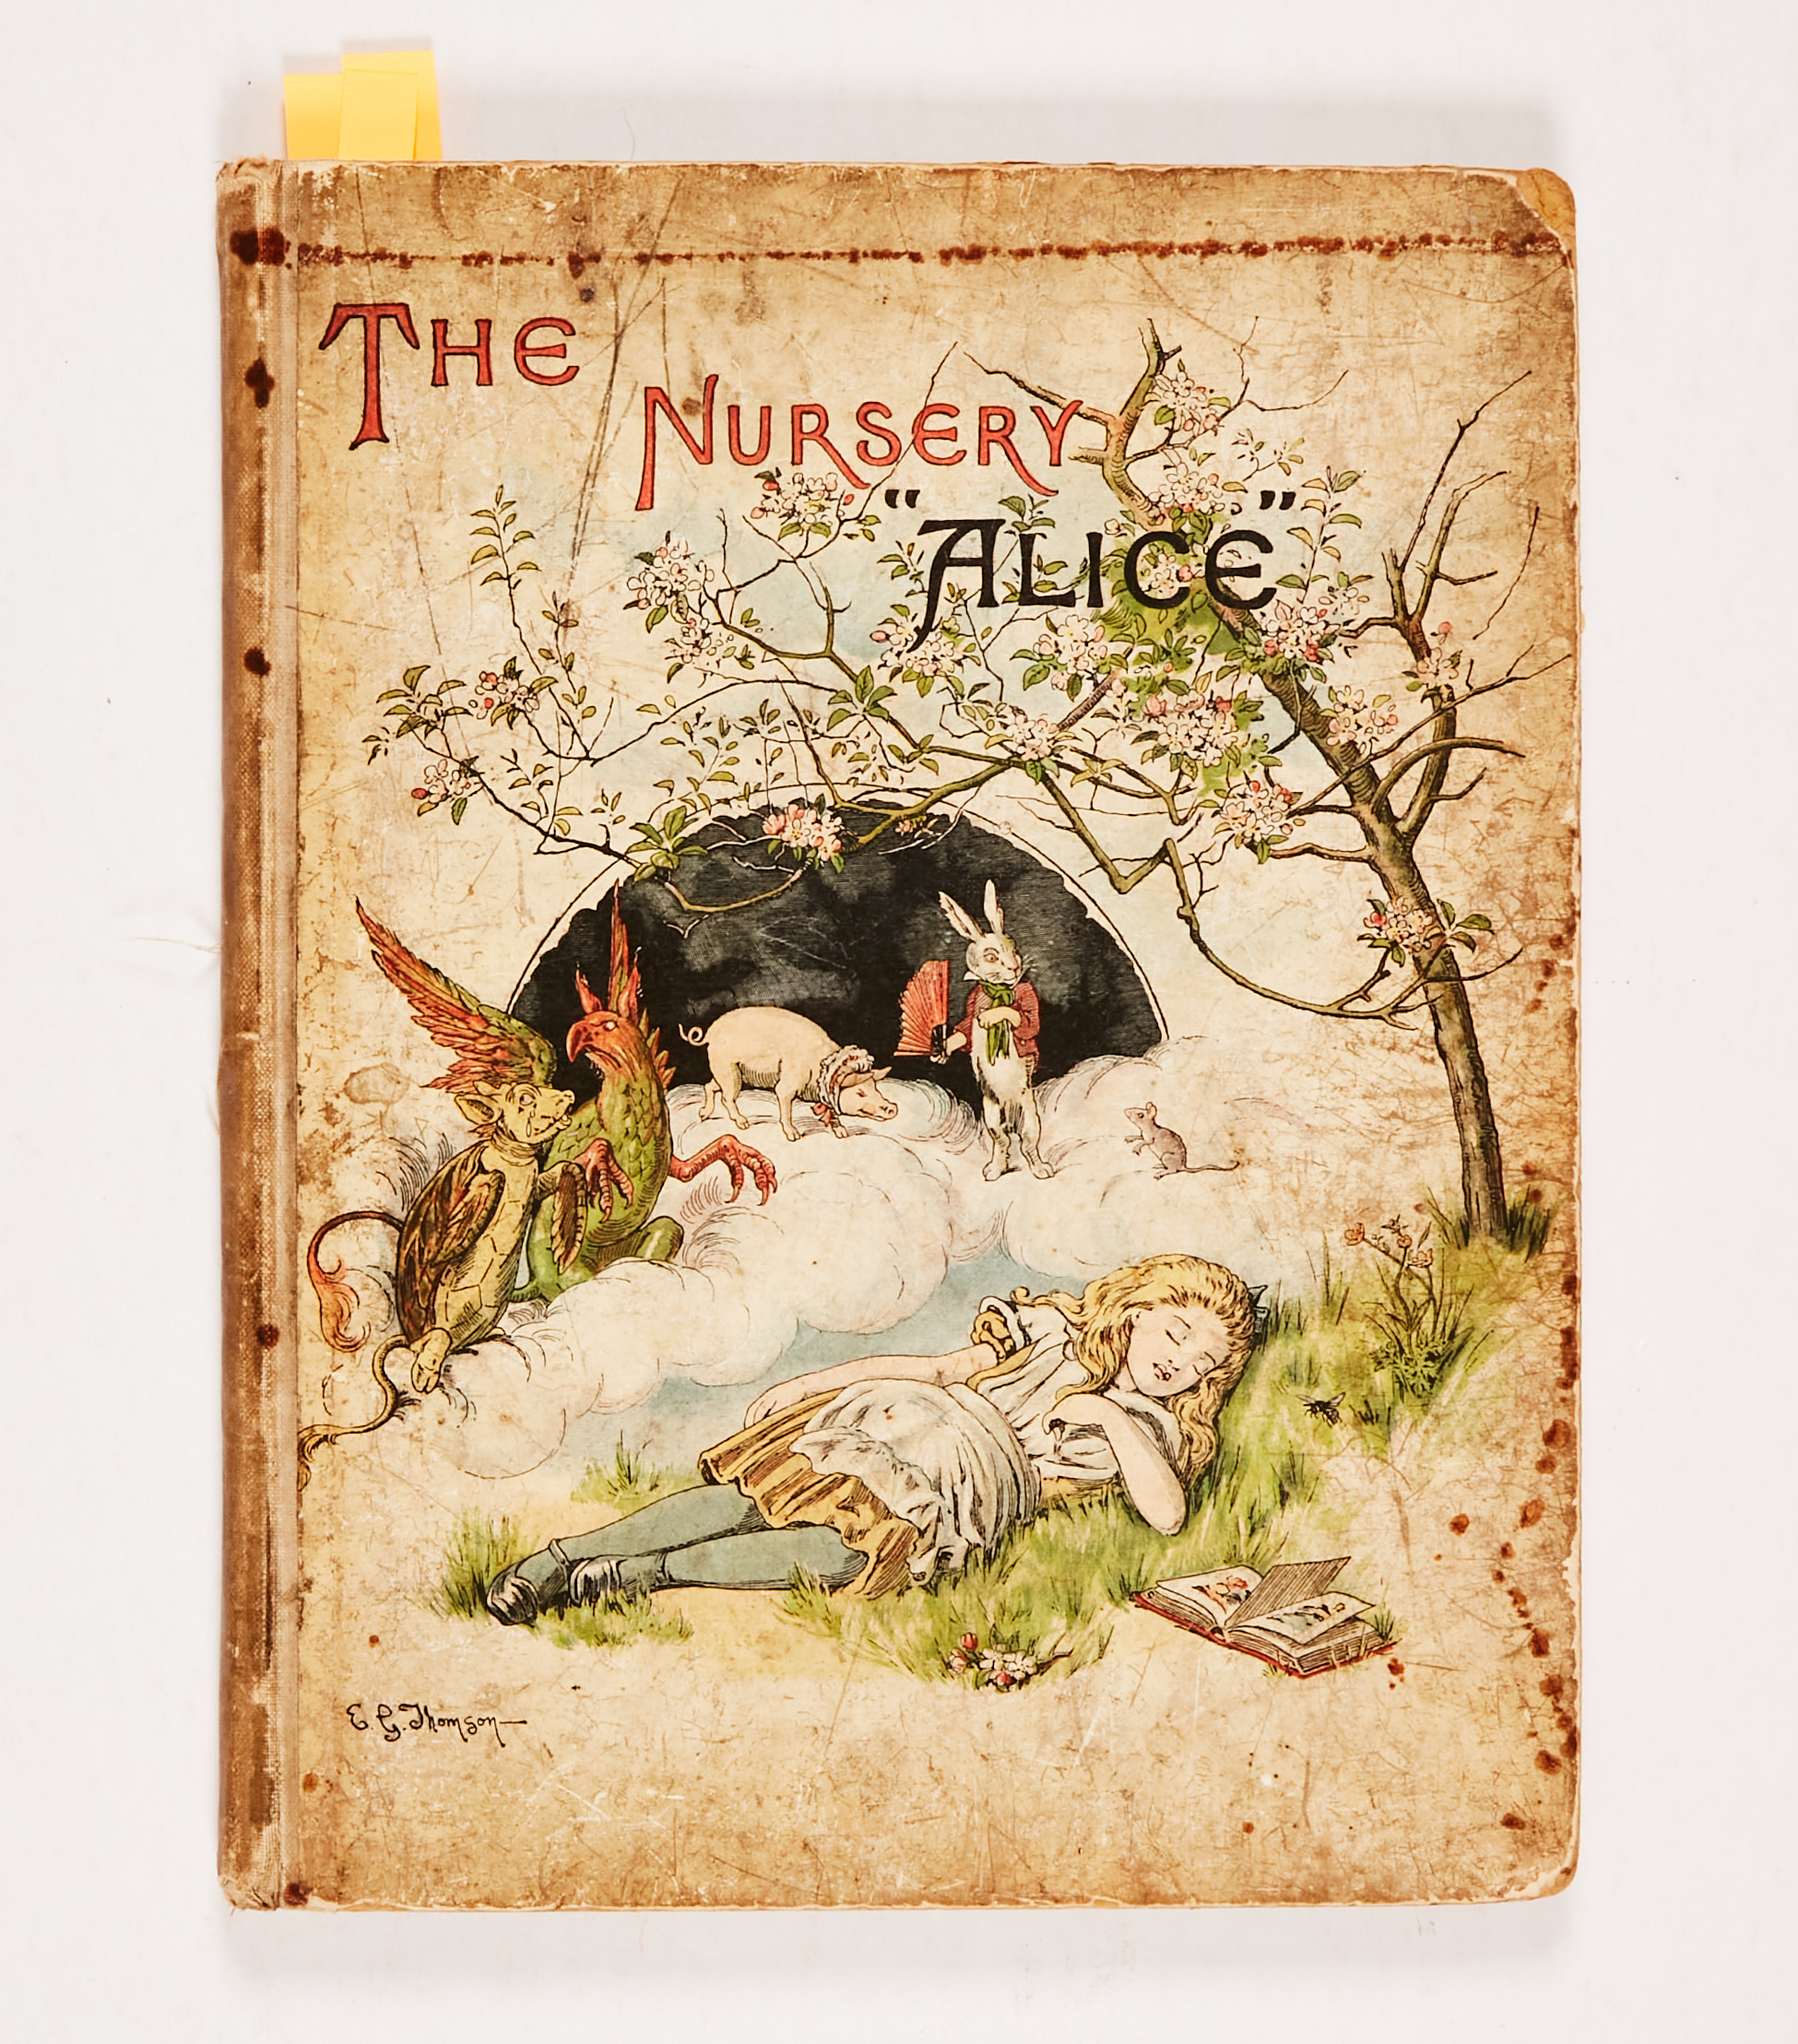 """The Nursery """"Alice"""" (1890 MacMillan and Co). Second edition containing 20 coloured enlargements from"""